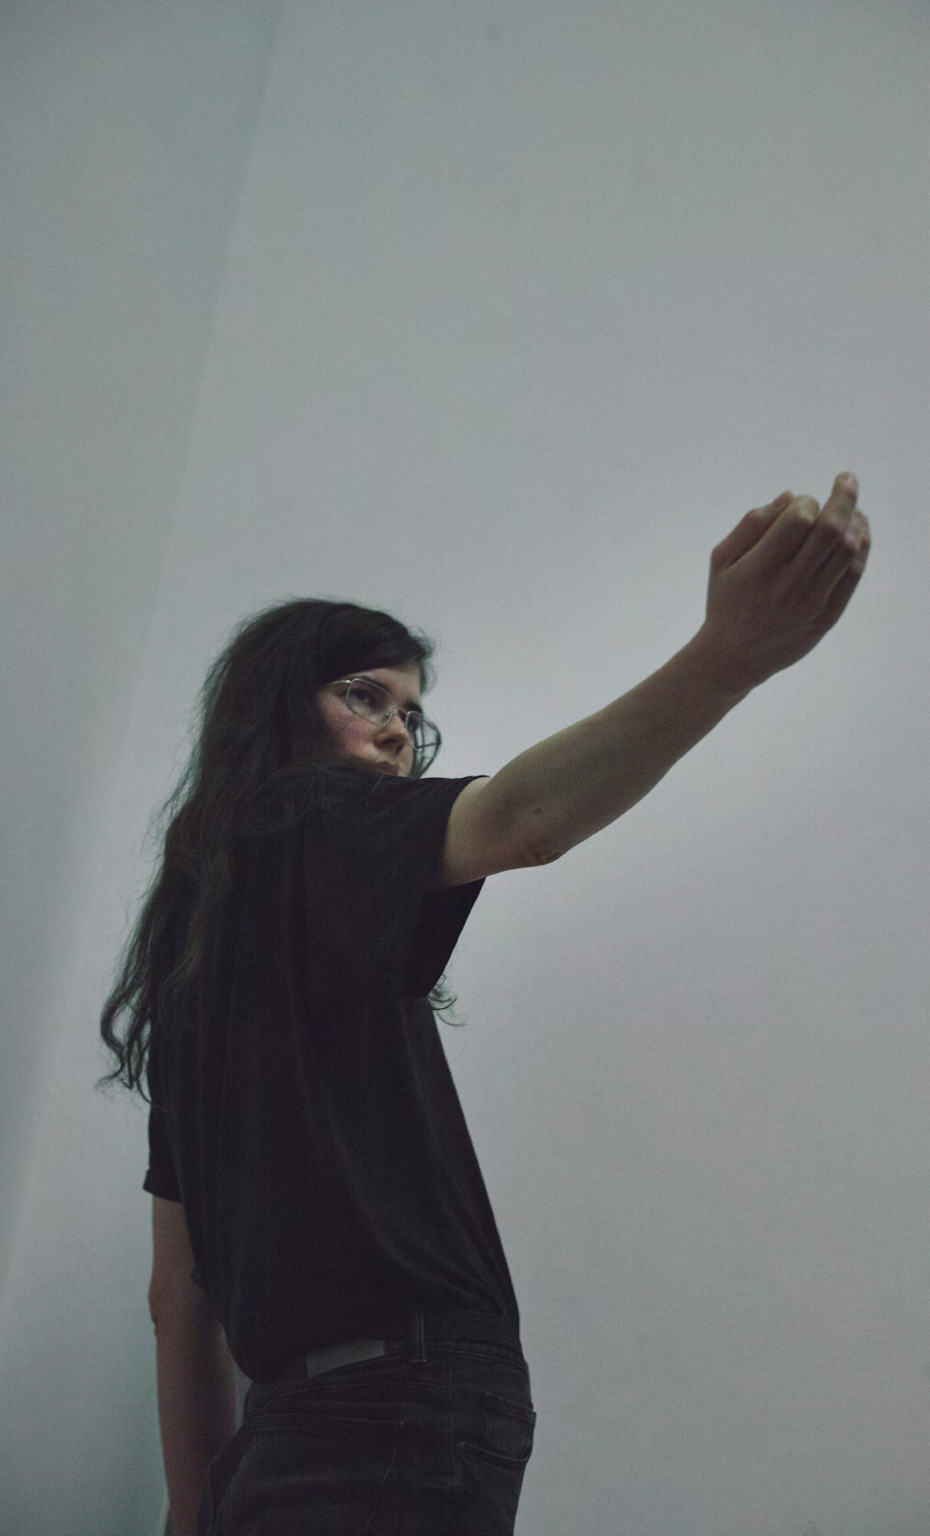 Eliza Douglas in Anne Imhof's Angst, performed at Kunsthalle Basel, 2016